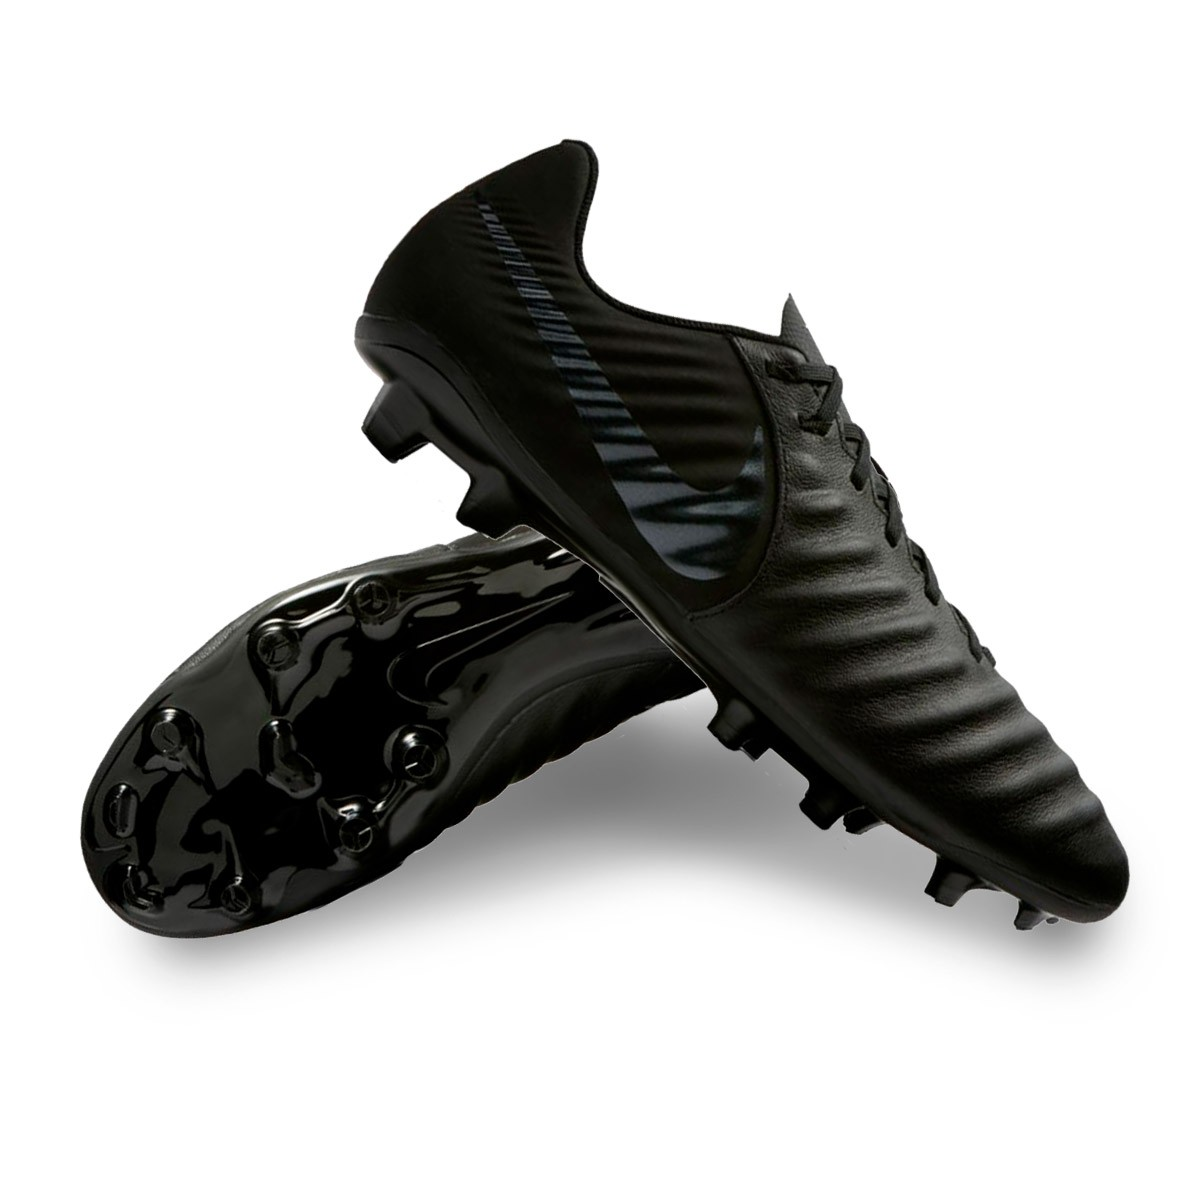 9da0e1e5c Football Boots Nike Tiempo Legend VII Academy FG Black - Football ...